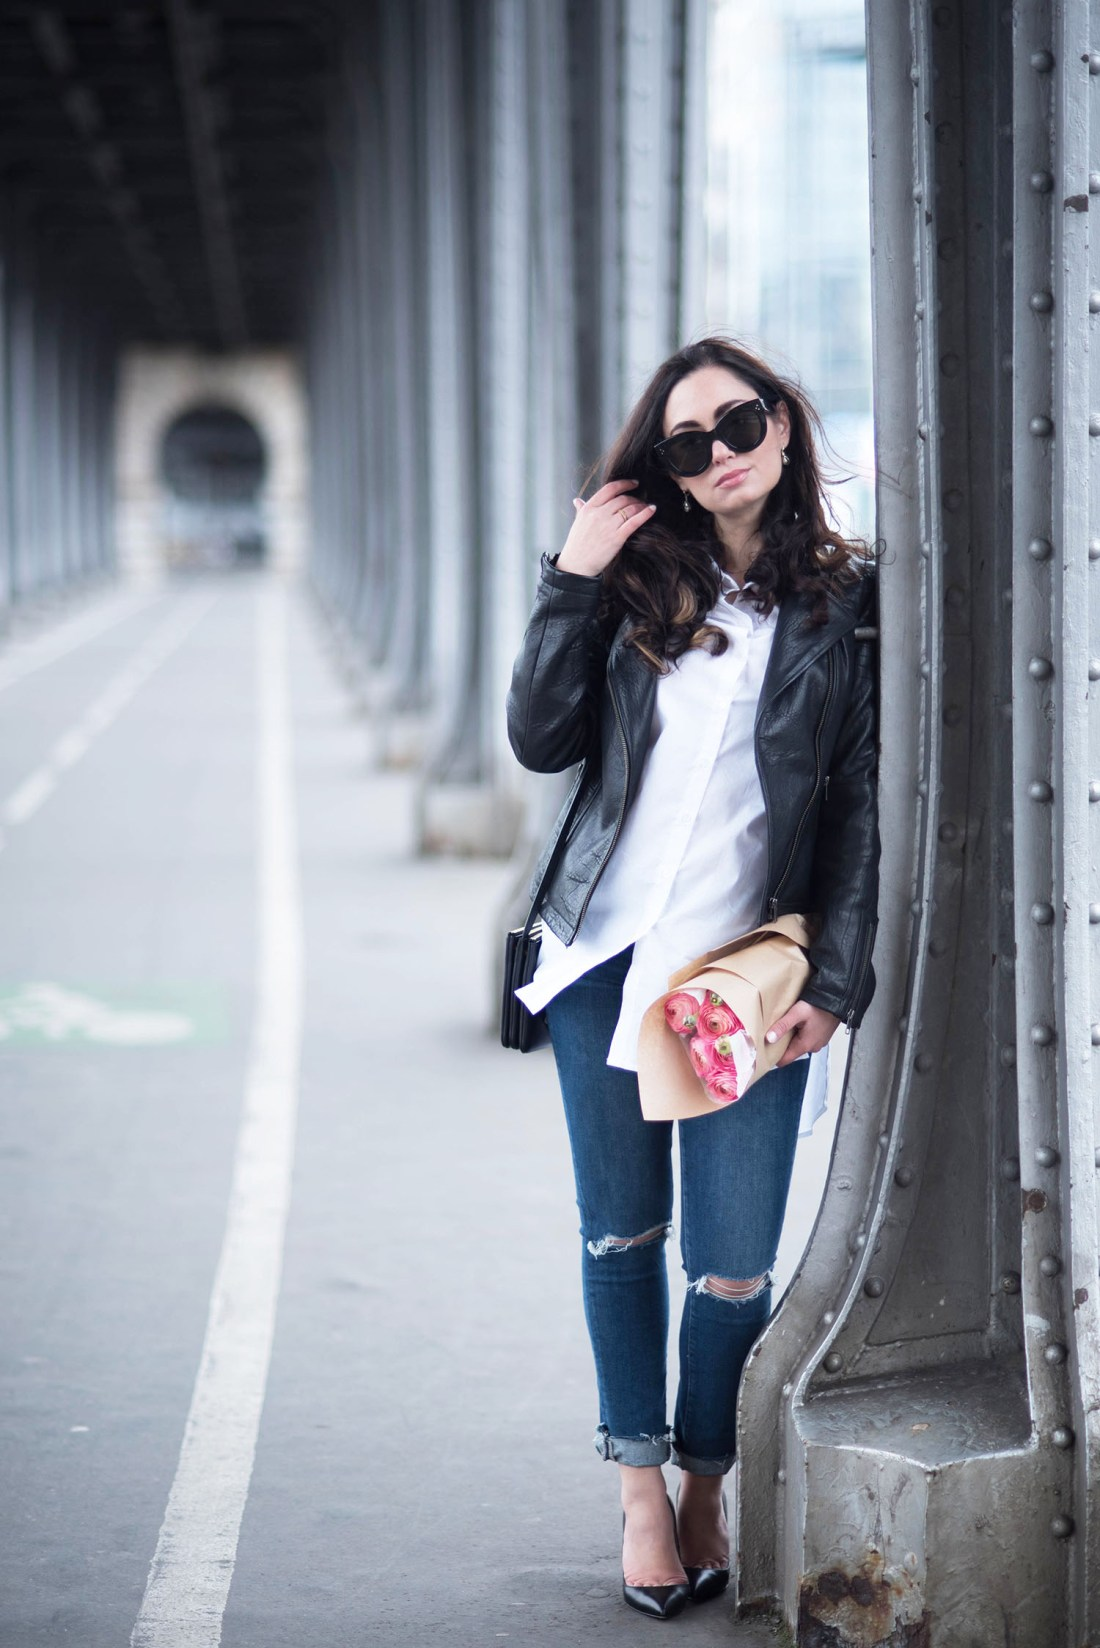 Fashion blogger Cee Fardoe of Coco & Vera stands under pont Bir Hakim in Paris wearing a Marled blouse and Celine Audrey sunglasses